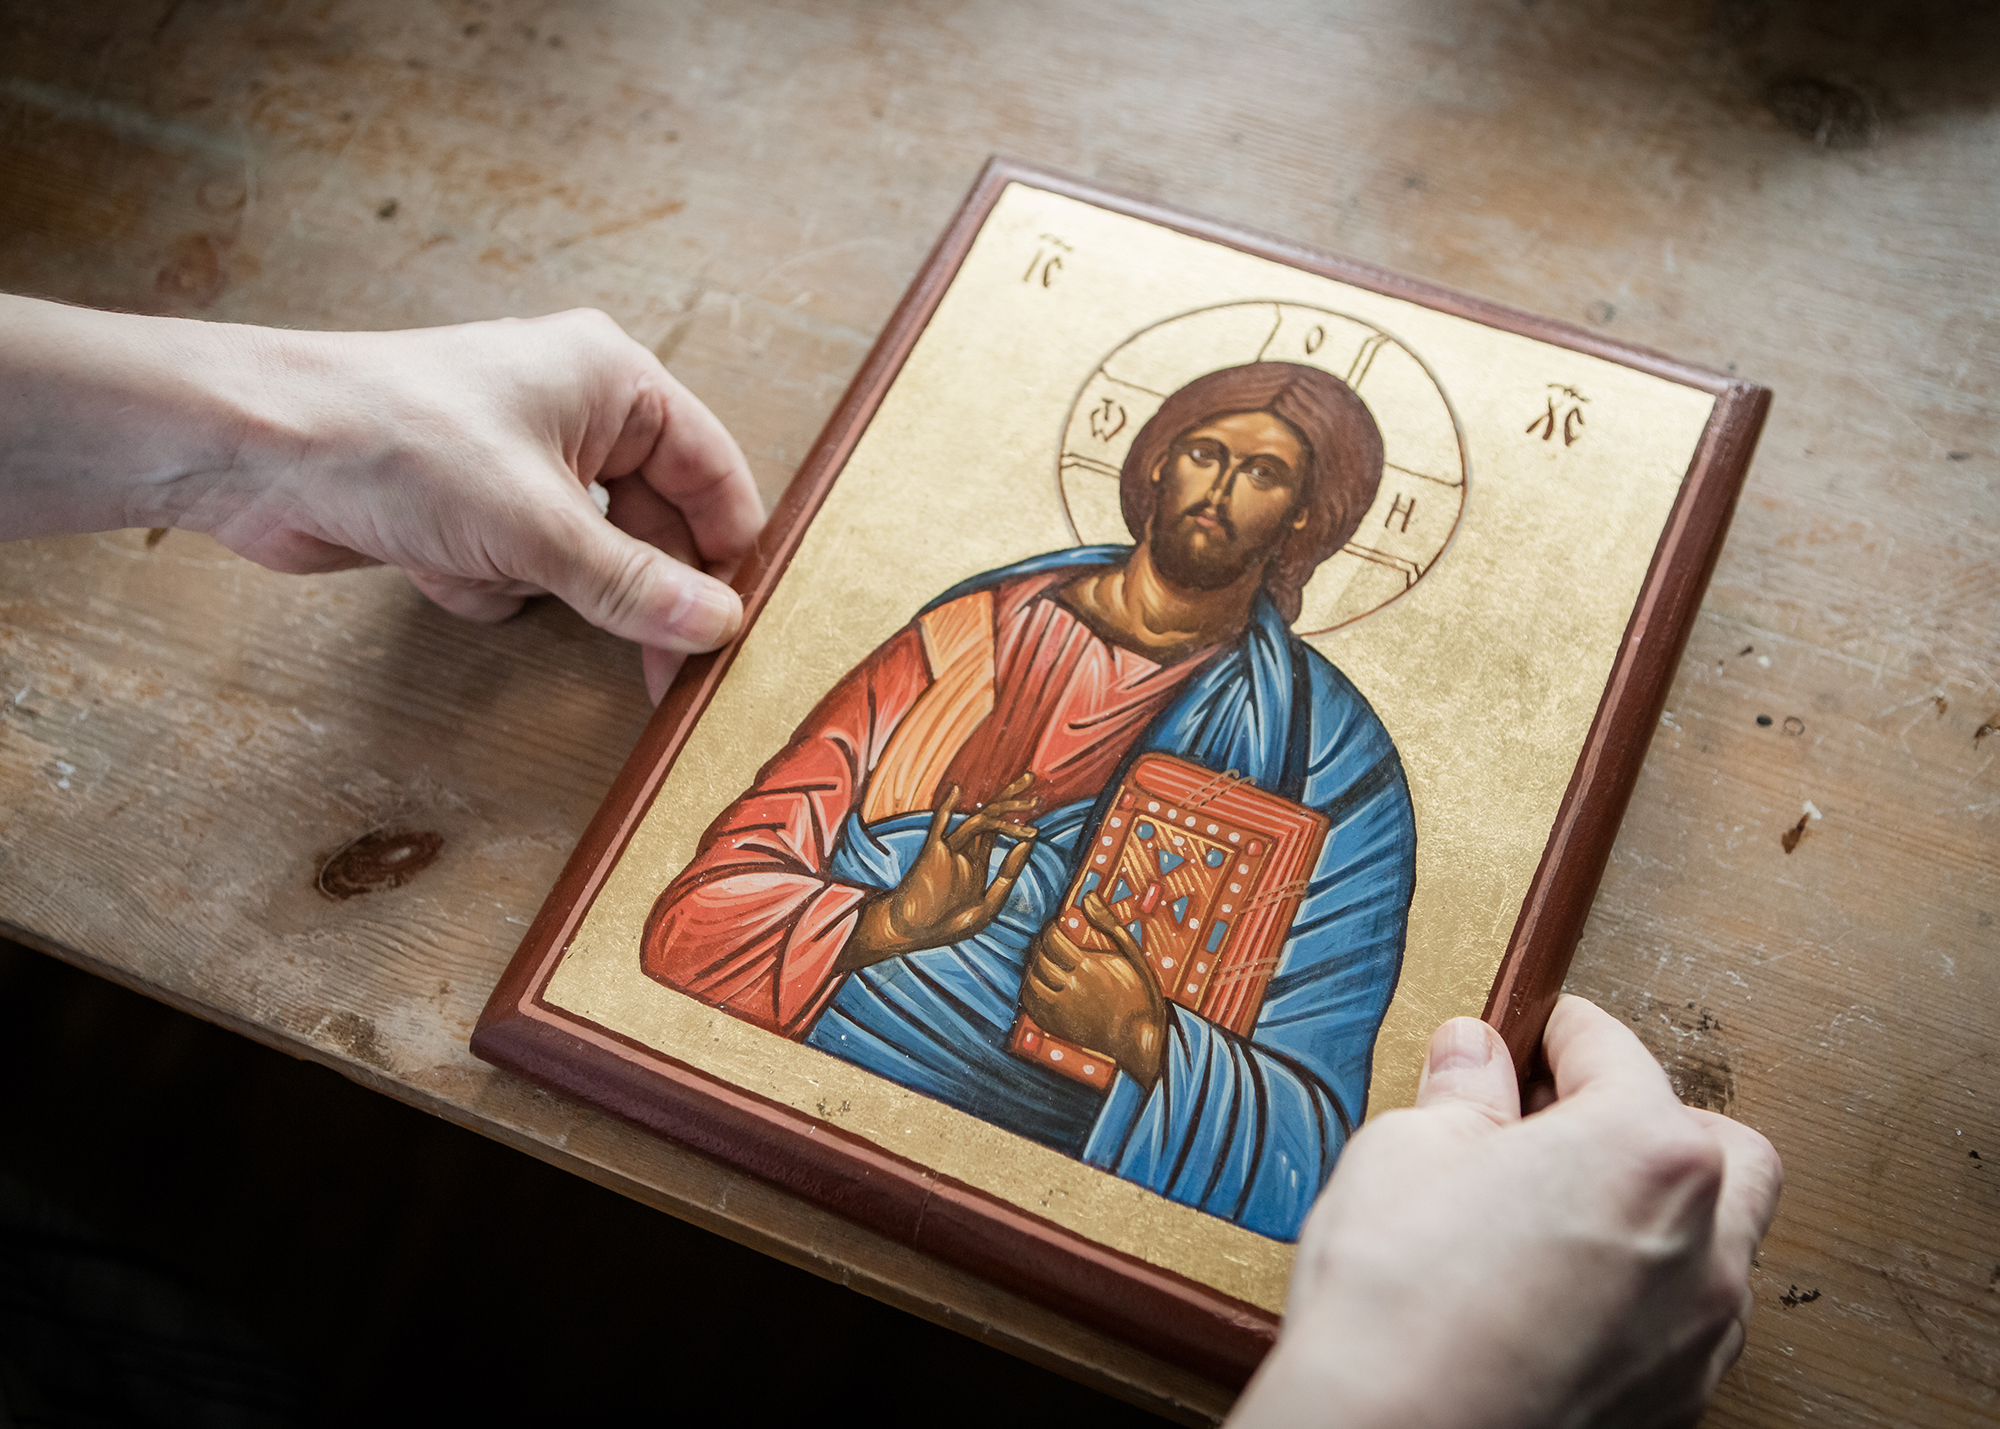 Christ Pantocrator with a book andfingers of the right hand in the shape of ICXC initials.